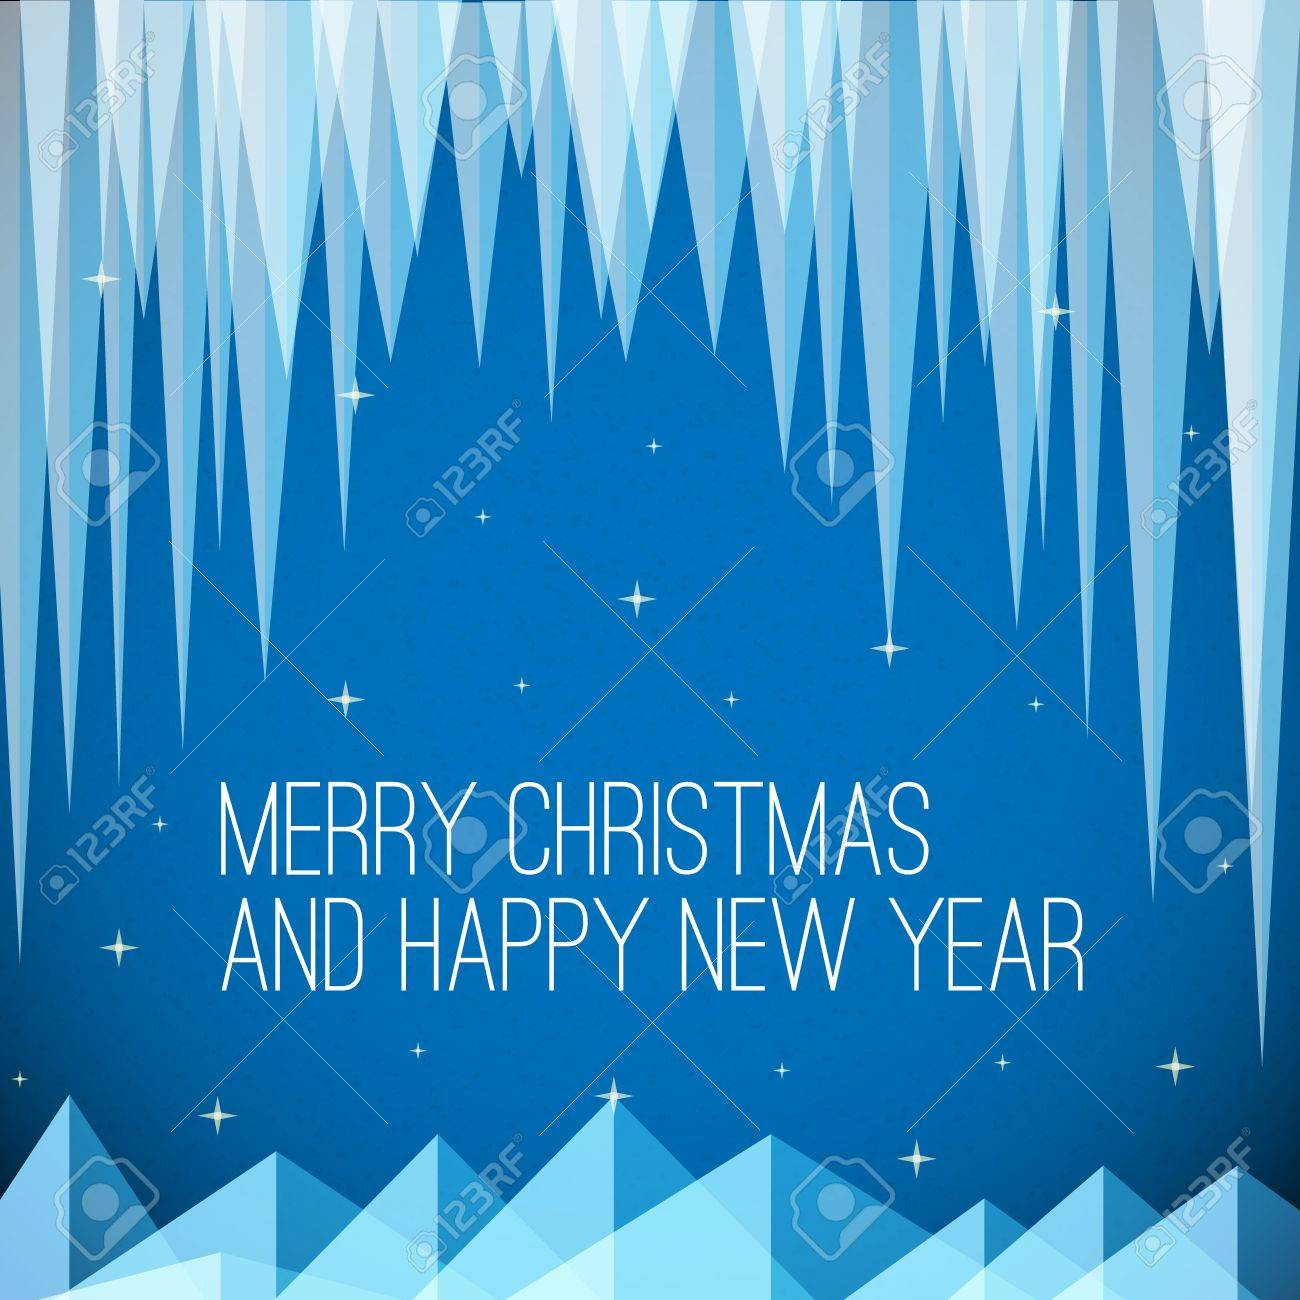 Retro night minimalistic Christmas card with icicles and snowy mountains Stock Vector - 16583660